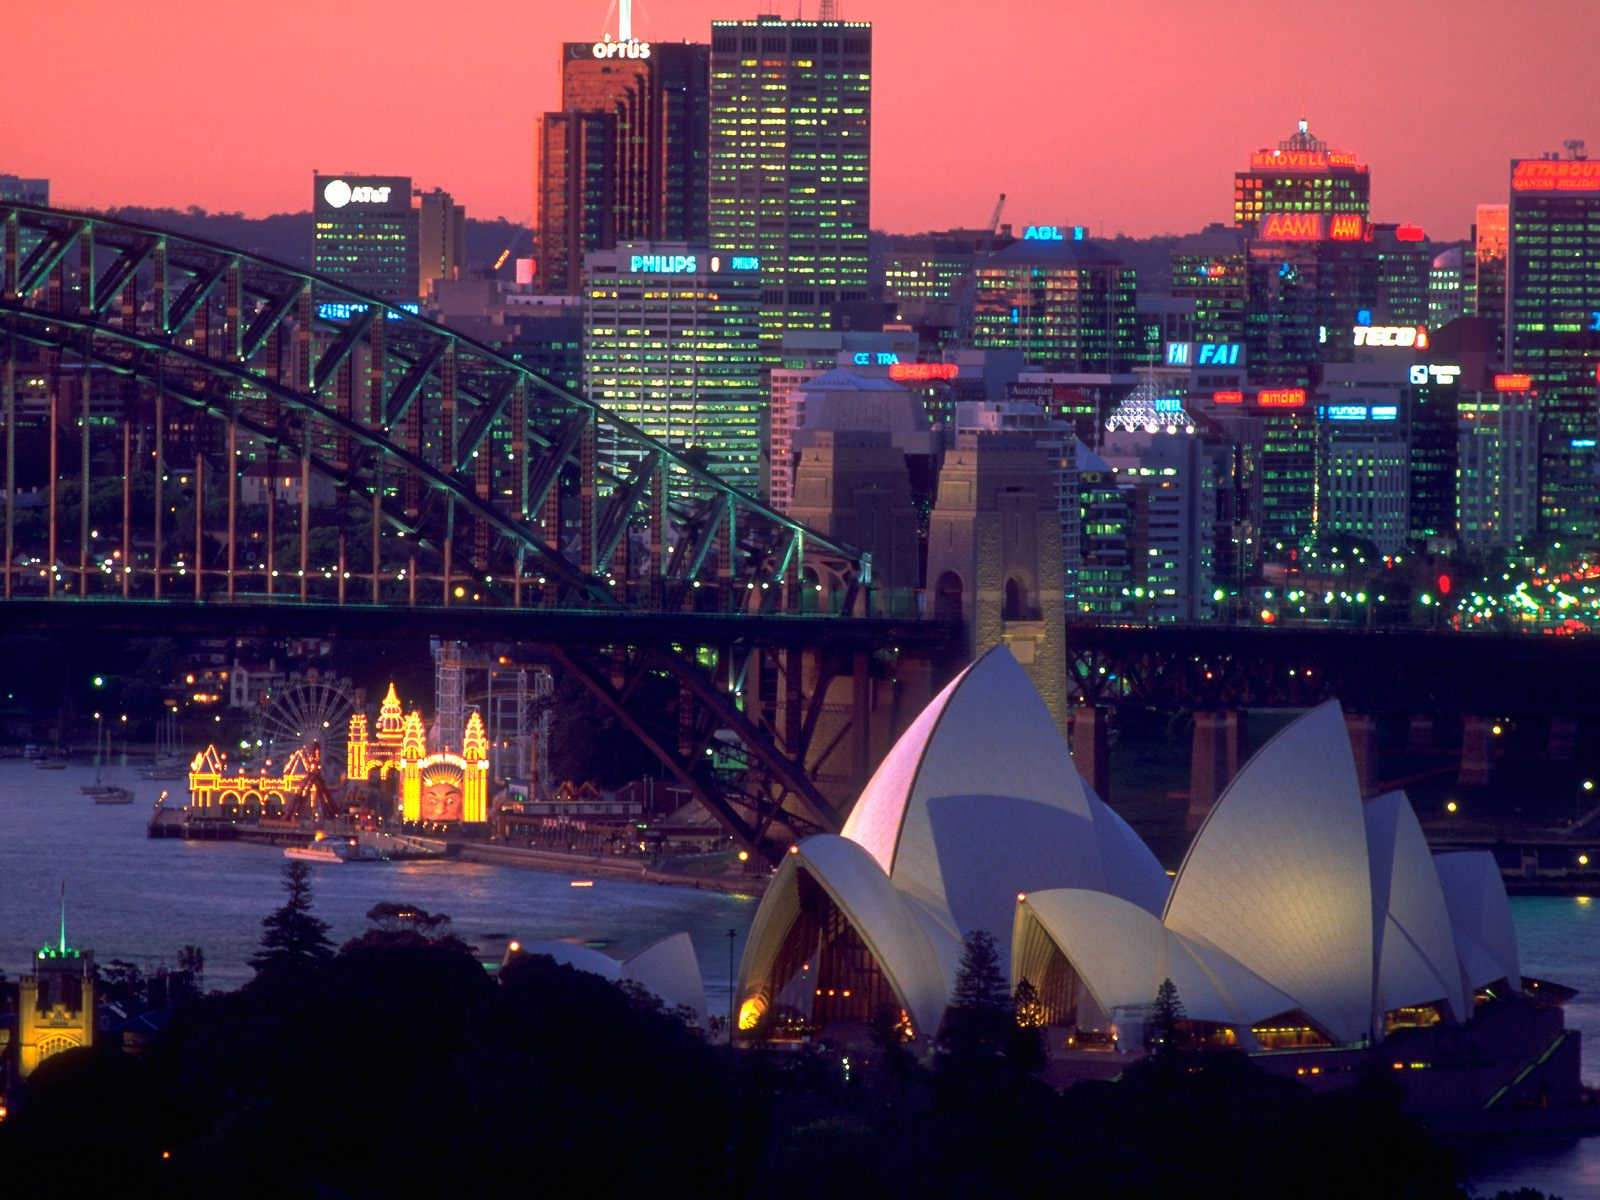 Sydney Australia  city images : Australia images Sydney Skyline HD wallpaper and background photos ...